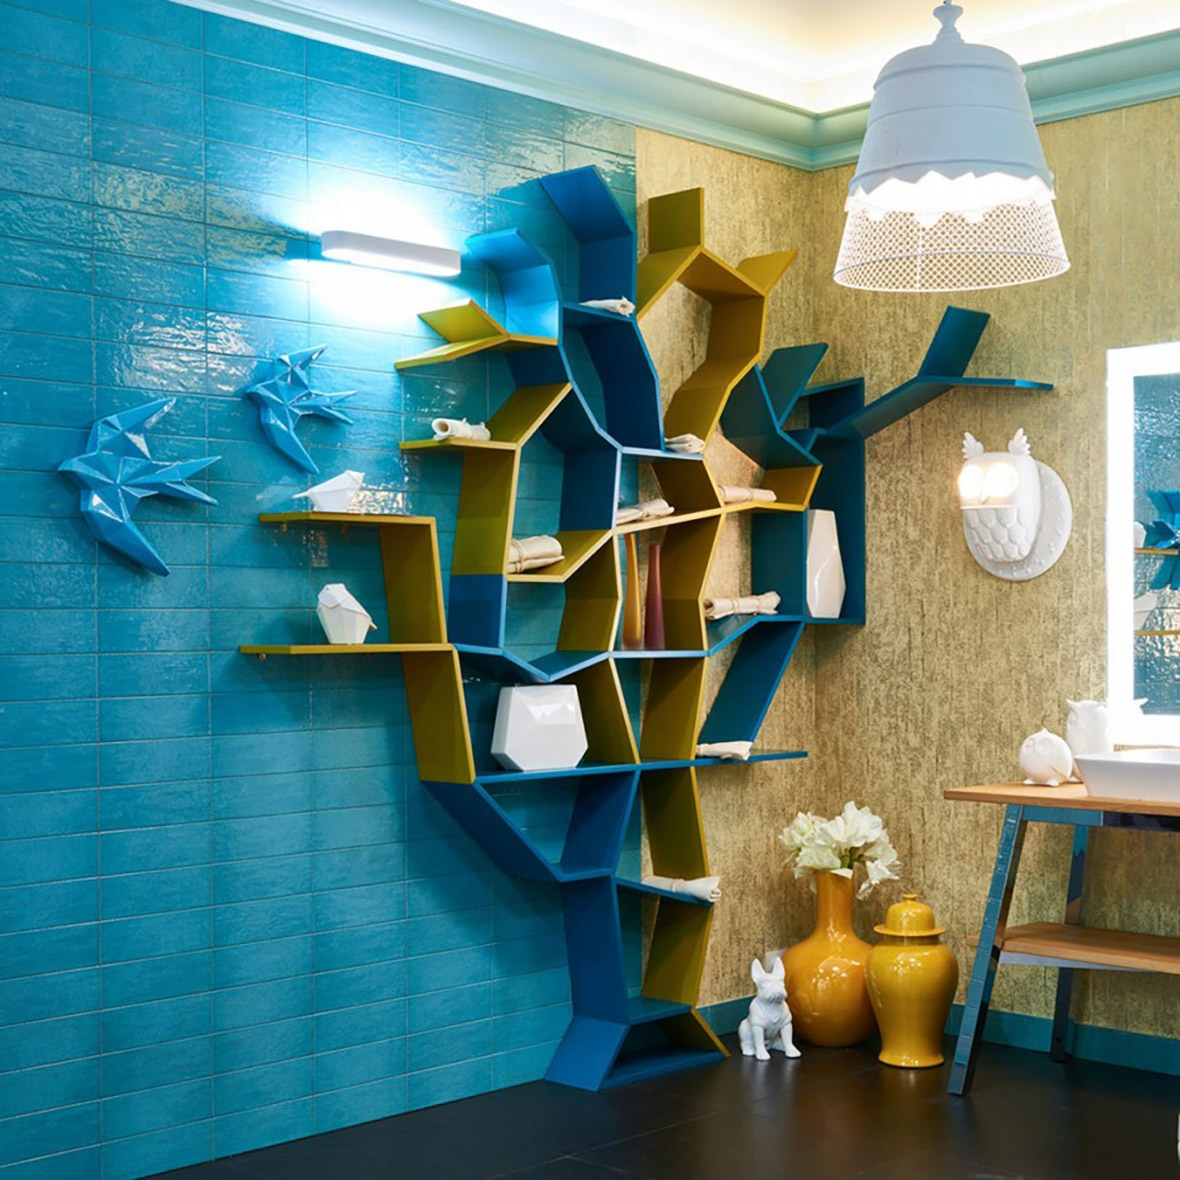 0-creative-bathroom-interior-design-eclectic-eco-style-shelving-unit-tree-shaped-turquoise-blue-glazed-wall-tiles-golden-wallpaper-omexco-vanity-unit-mirror-with